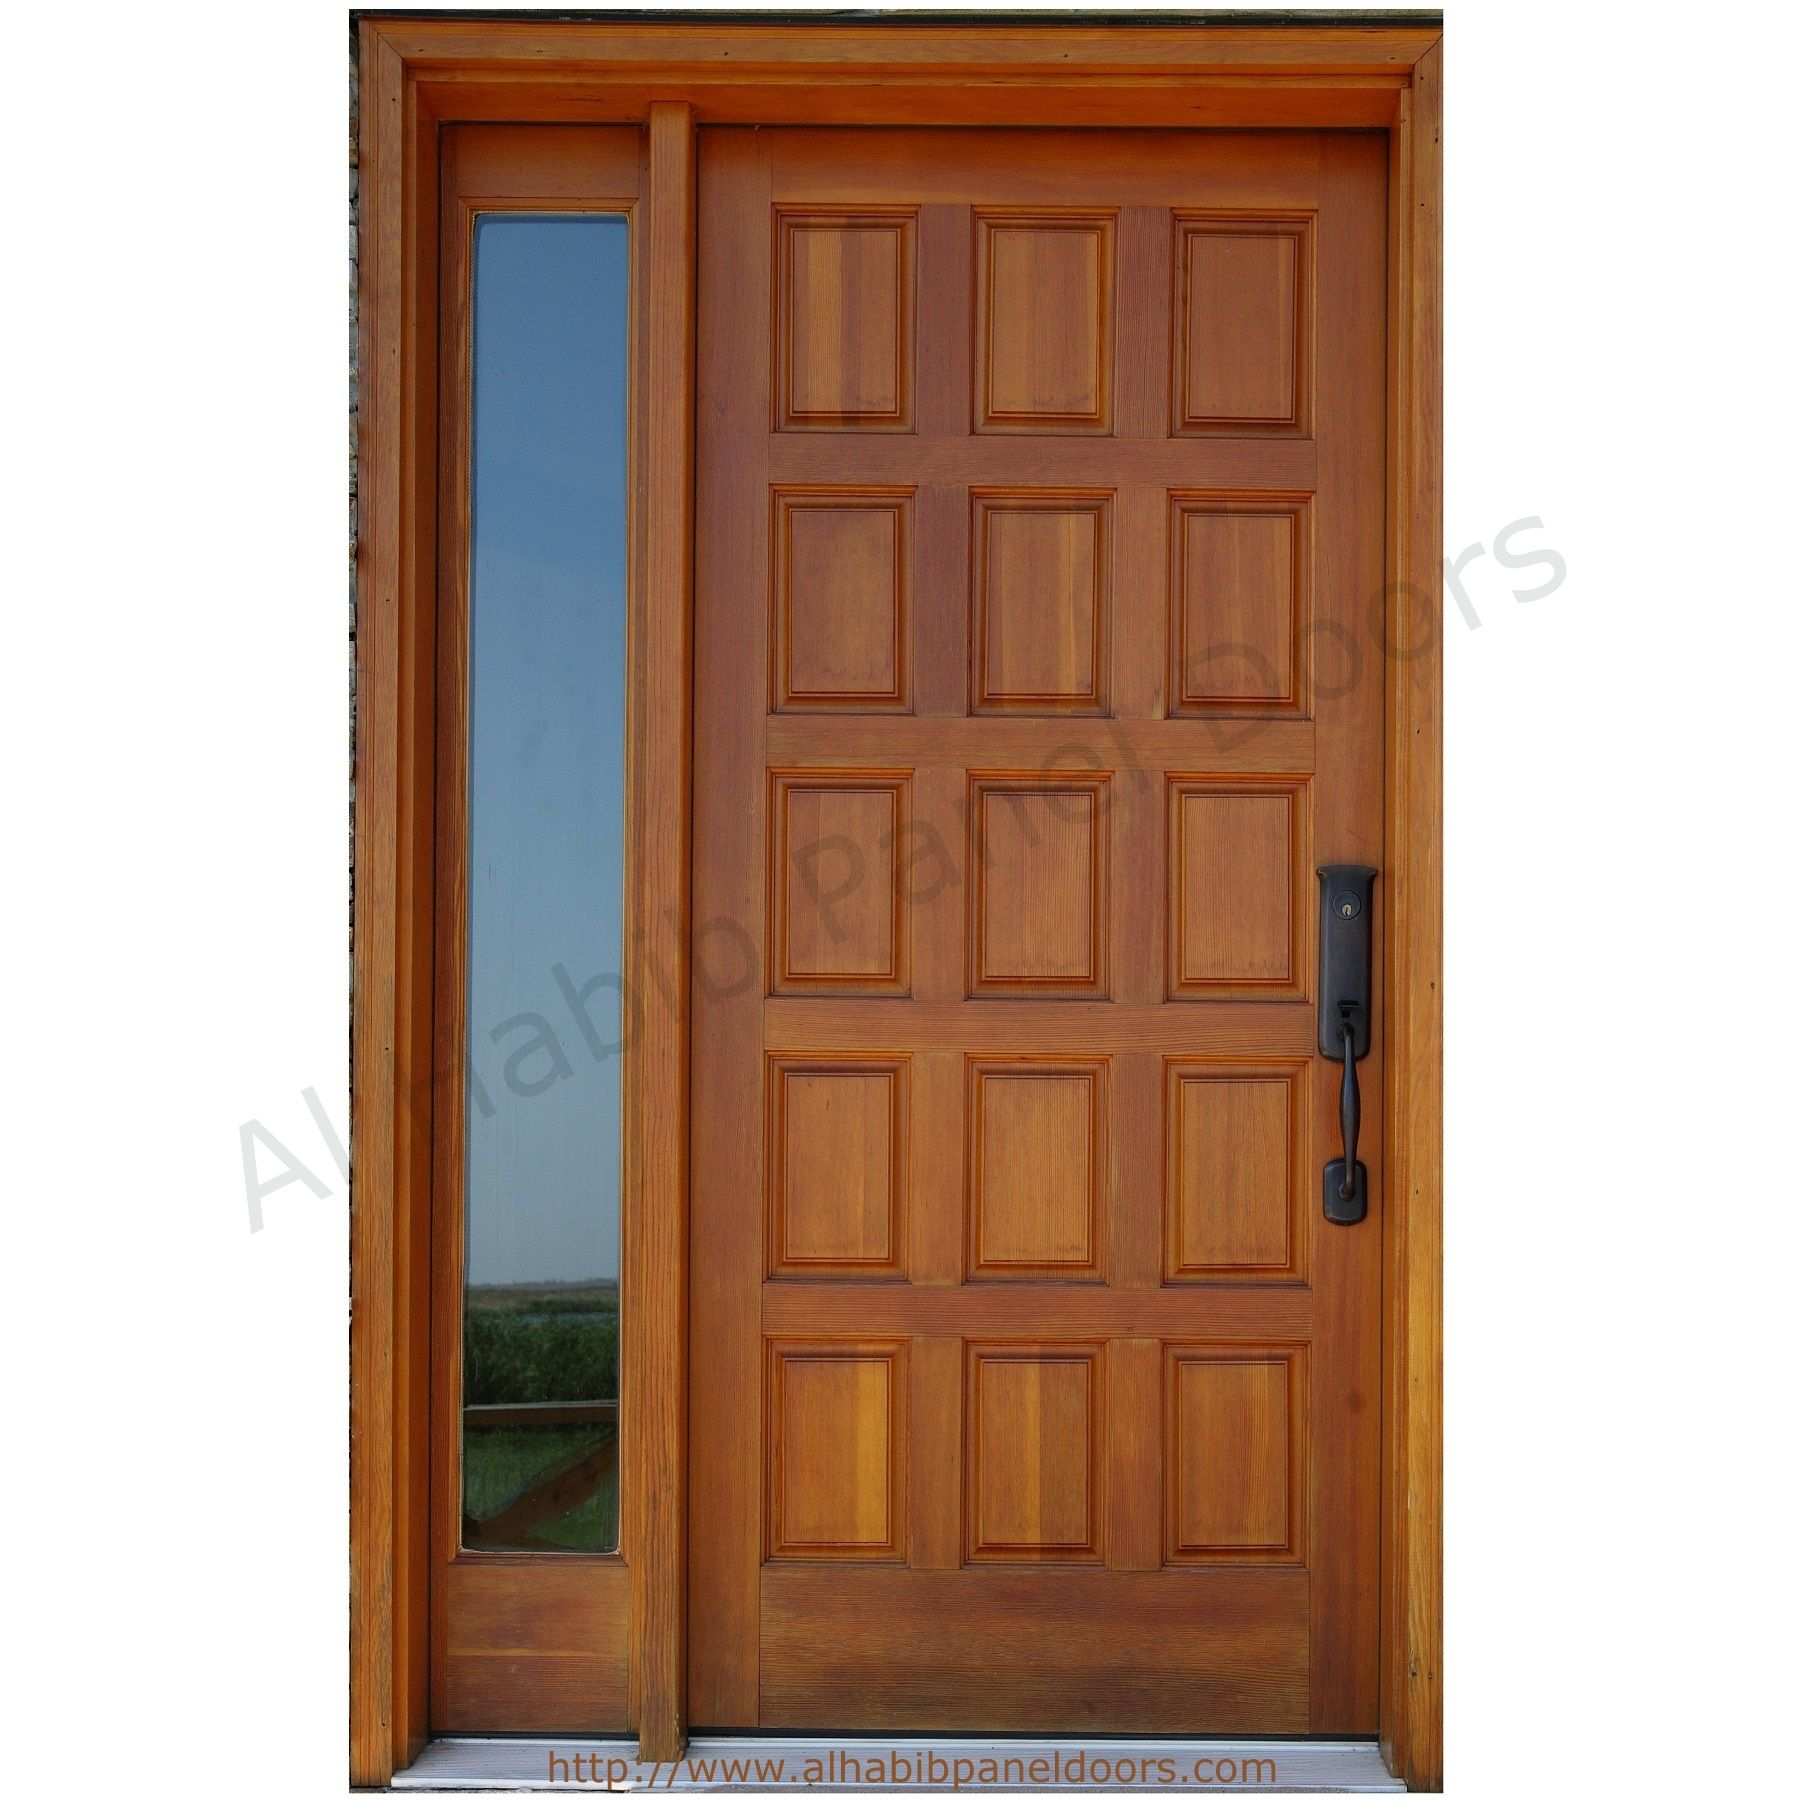 Solid Wooden Panel Door With Frame Hpd427 - Solid Wood Doors - Al Habib Panel Doors  sc 1 st  Pinterest & Solid Wooden Panel Door With Frame Hpd427 - Solid Wood Doors - Al ...